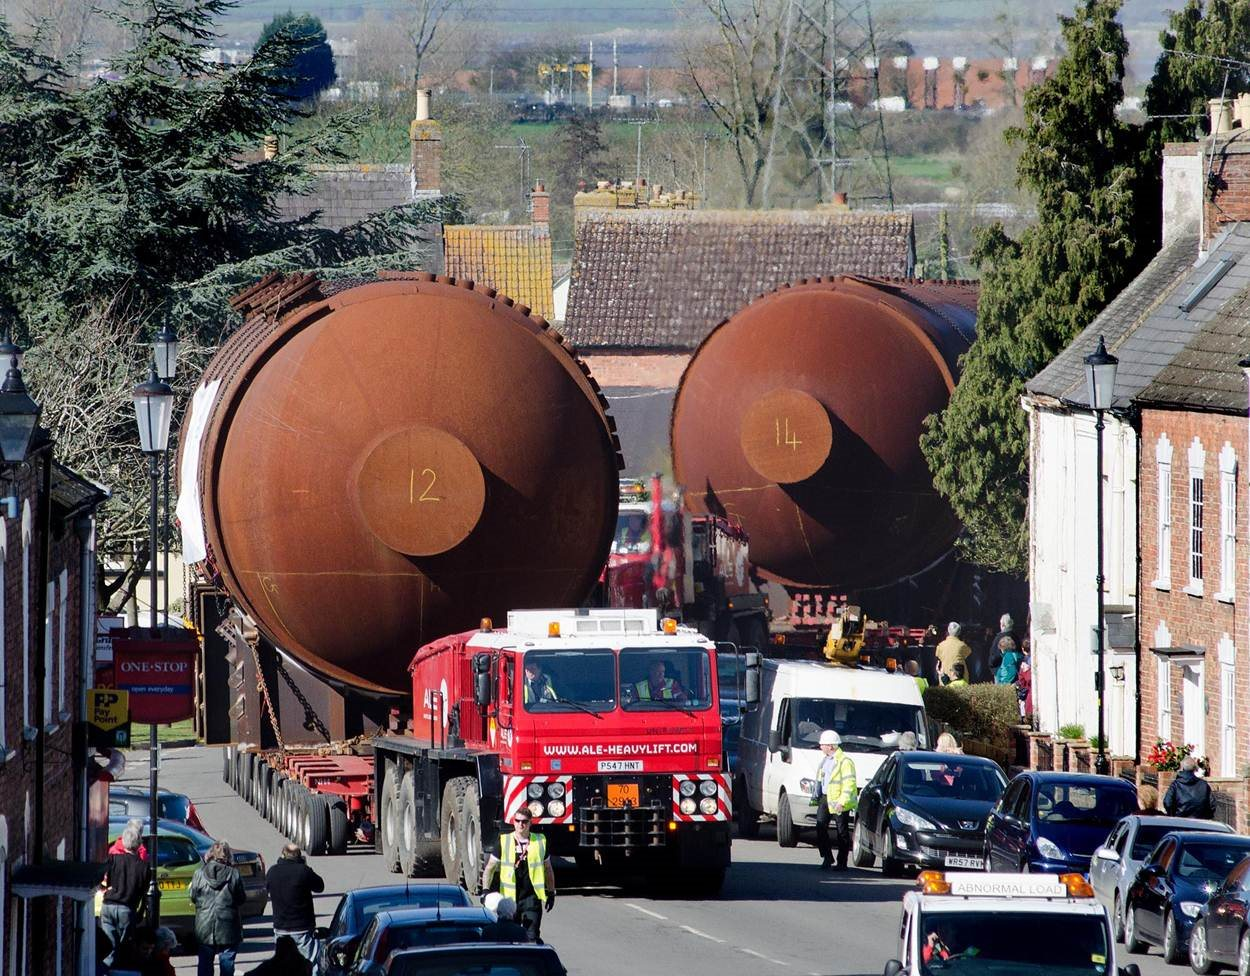 Two of the boilers being transported through the town of Berkeley